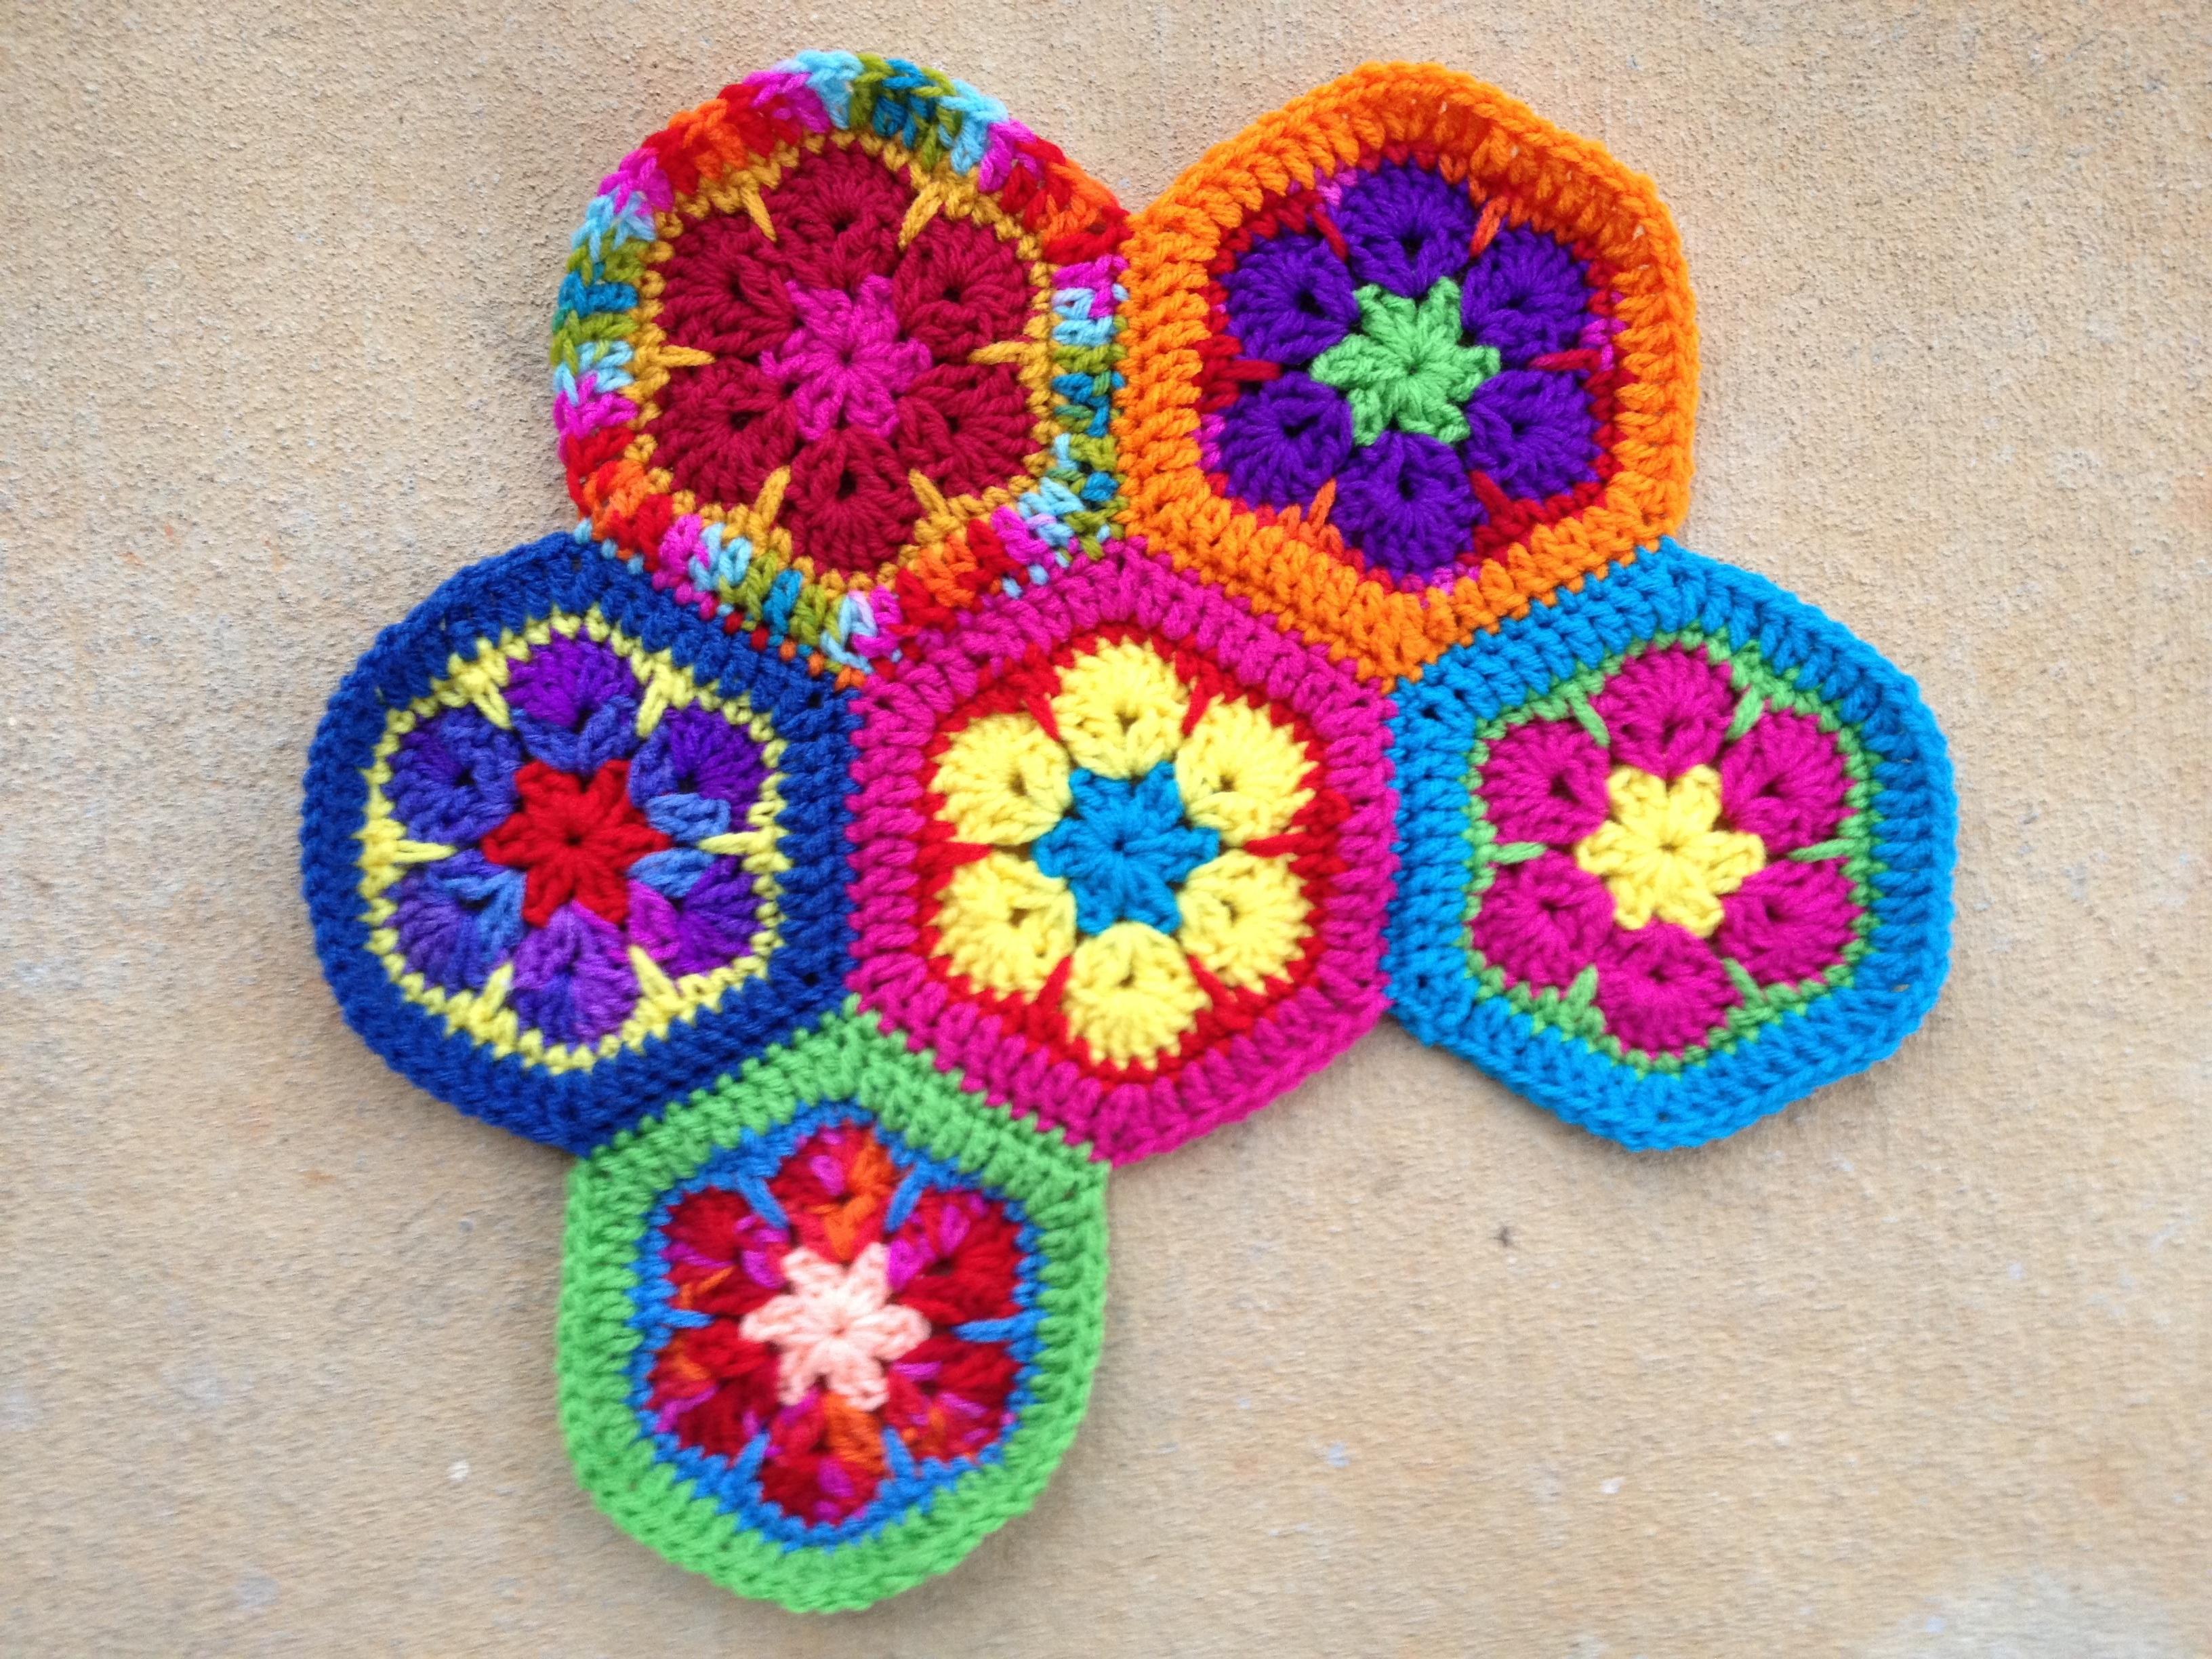 African Flower Crochet Pattern Half : African Flower Crochet Purse Part 2 Pictures to pin on ...